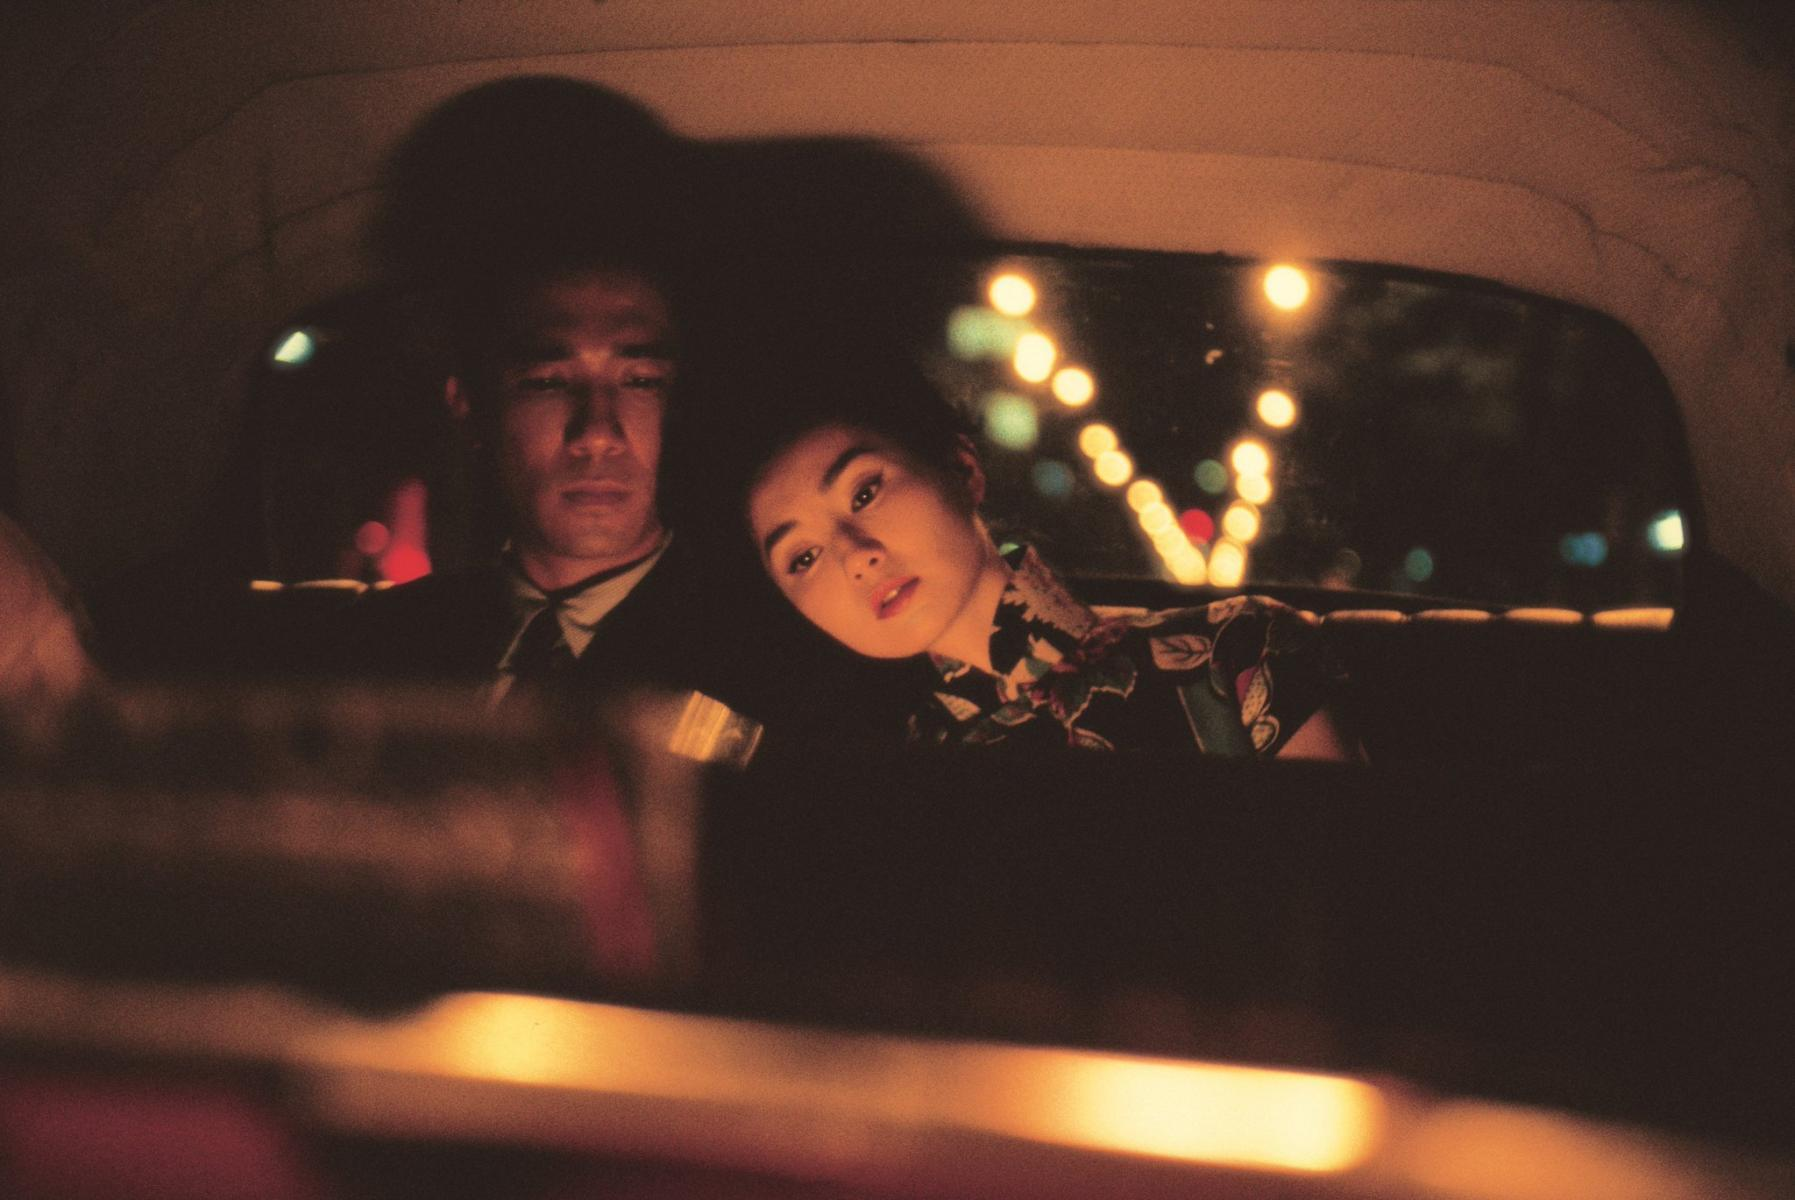 Image gallery for In the Mood for Love - FilmAffinity